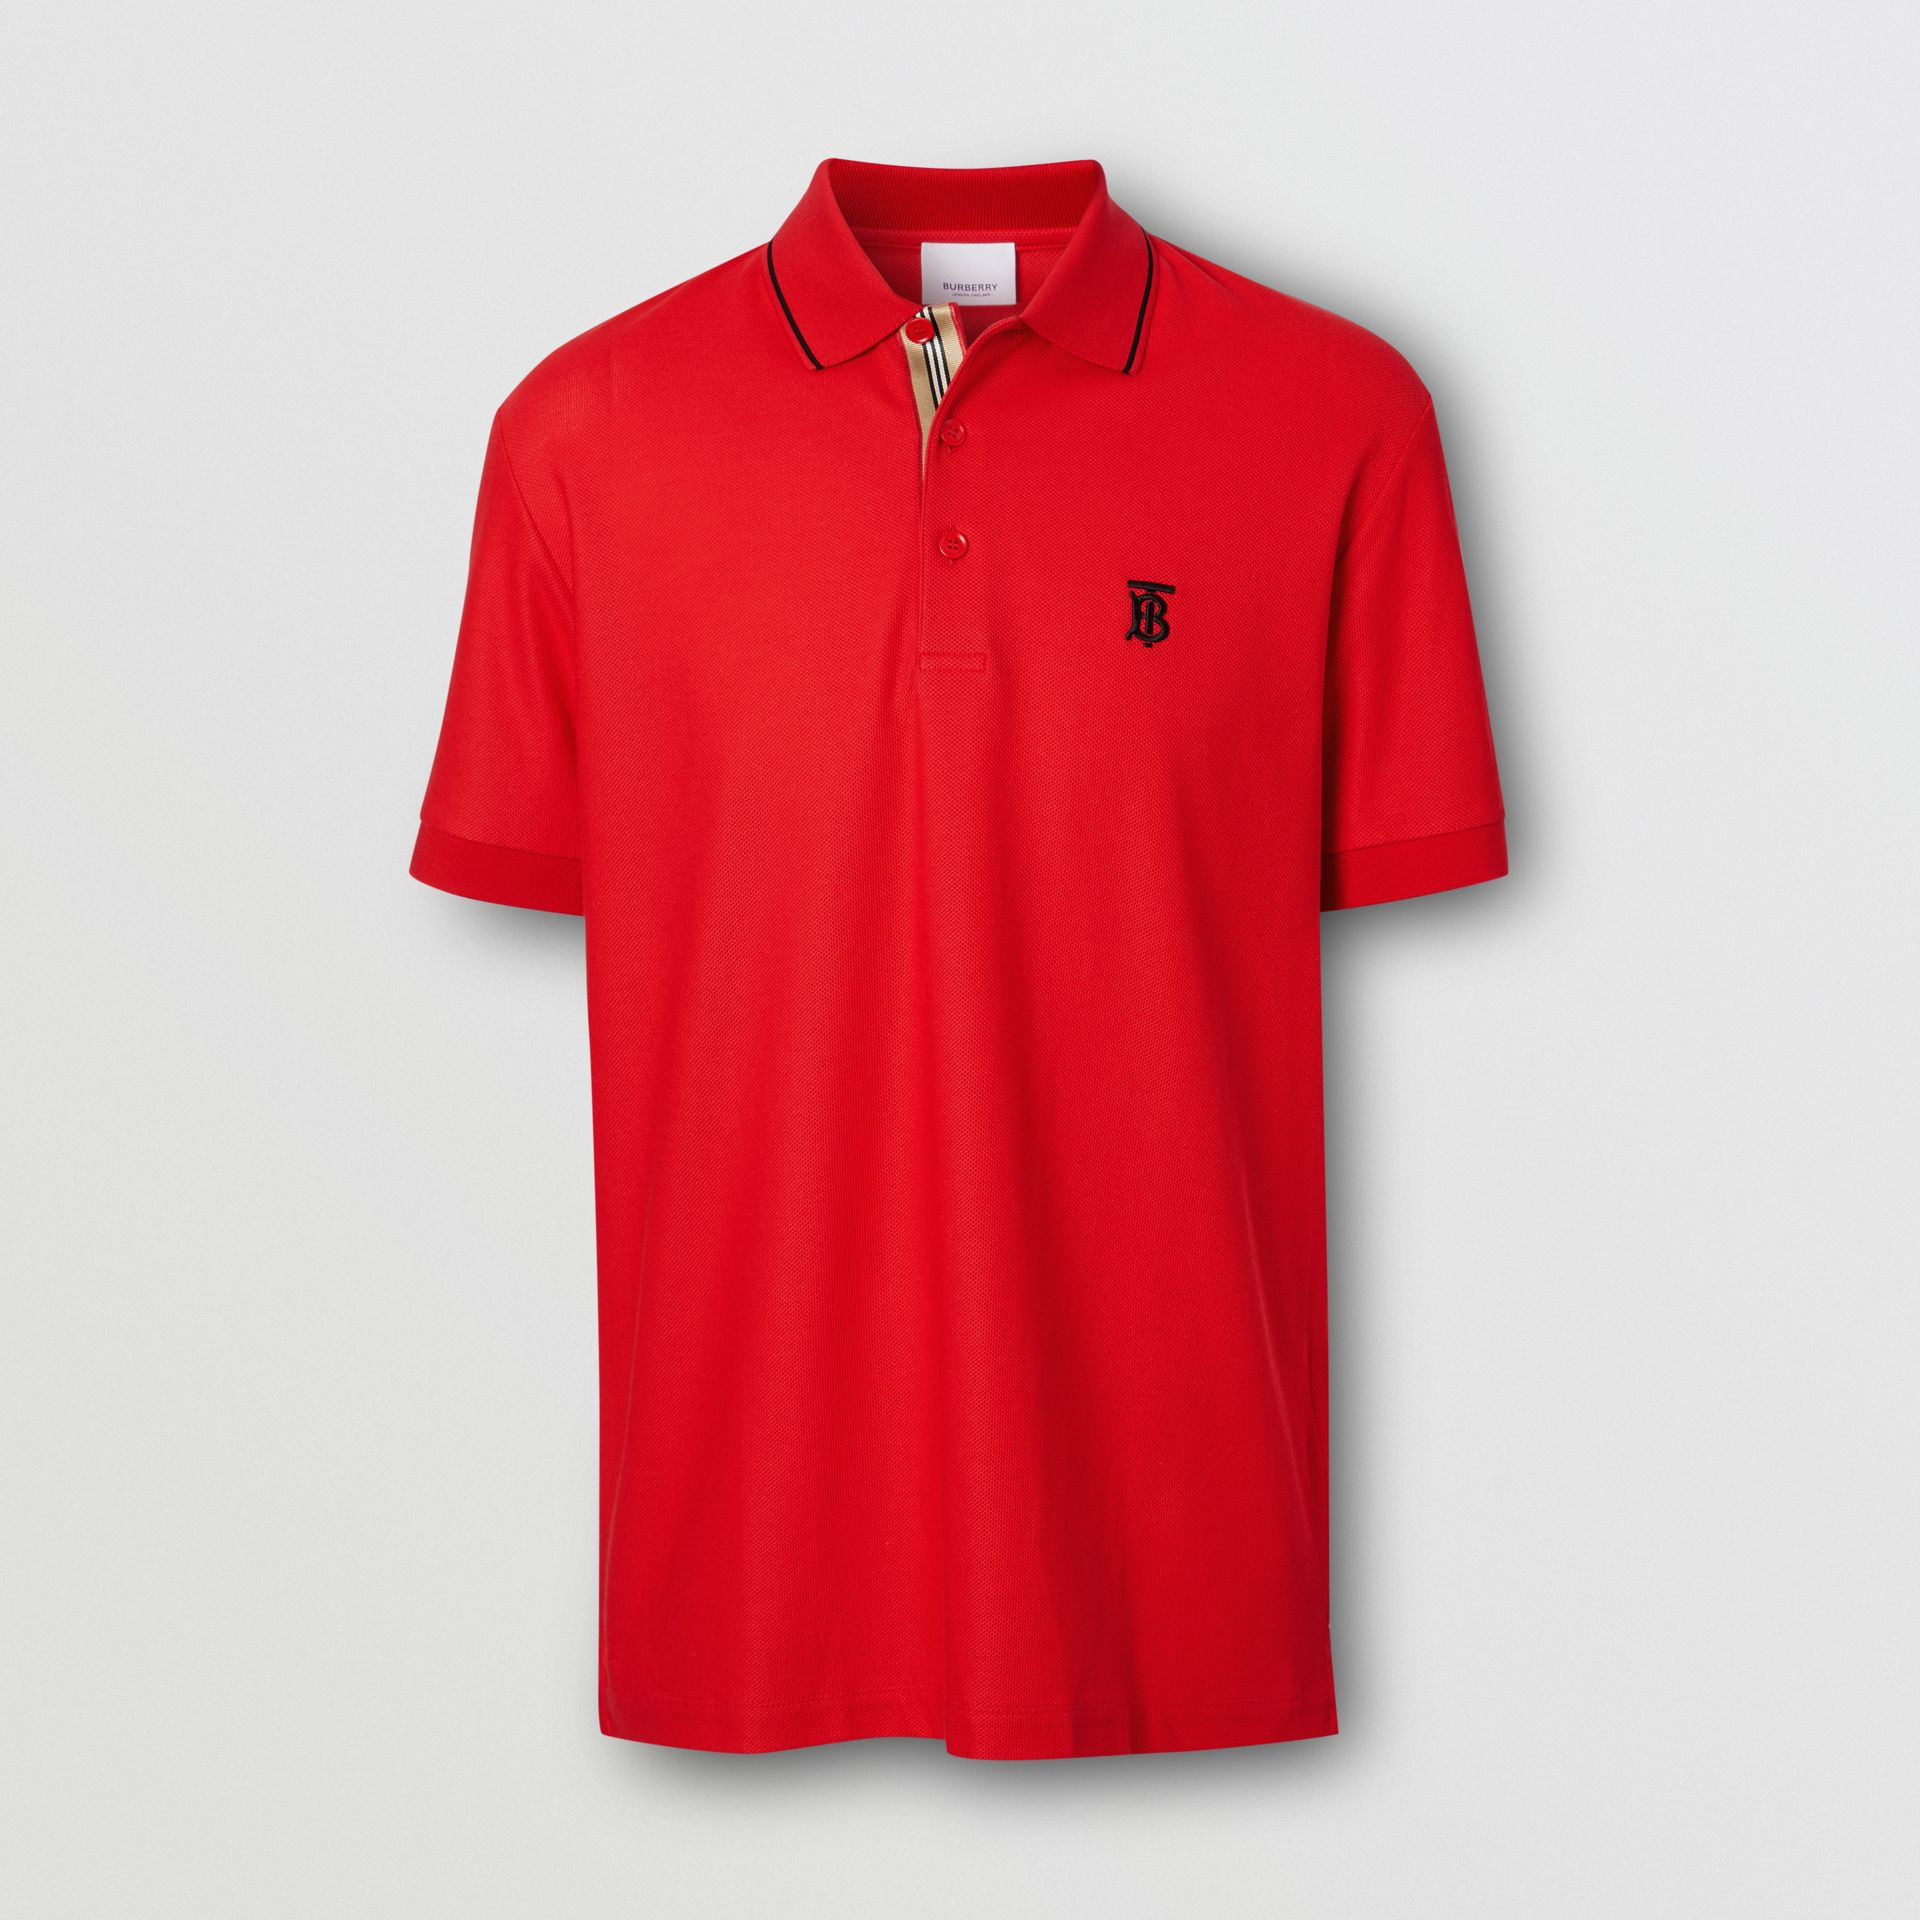 Icon Stripe Placket Cotton Piqué Polo Shirt in Bright Red - Men | Burberry United States - gallery image 3